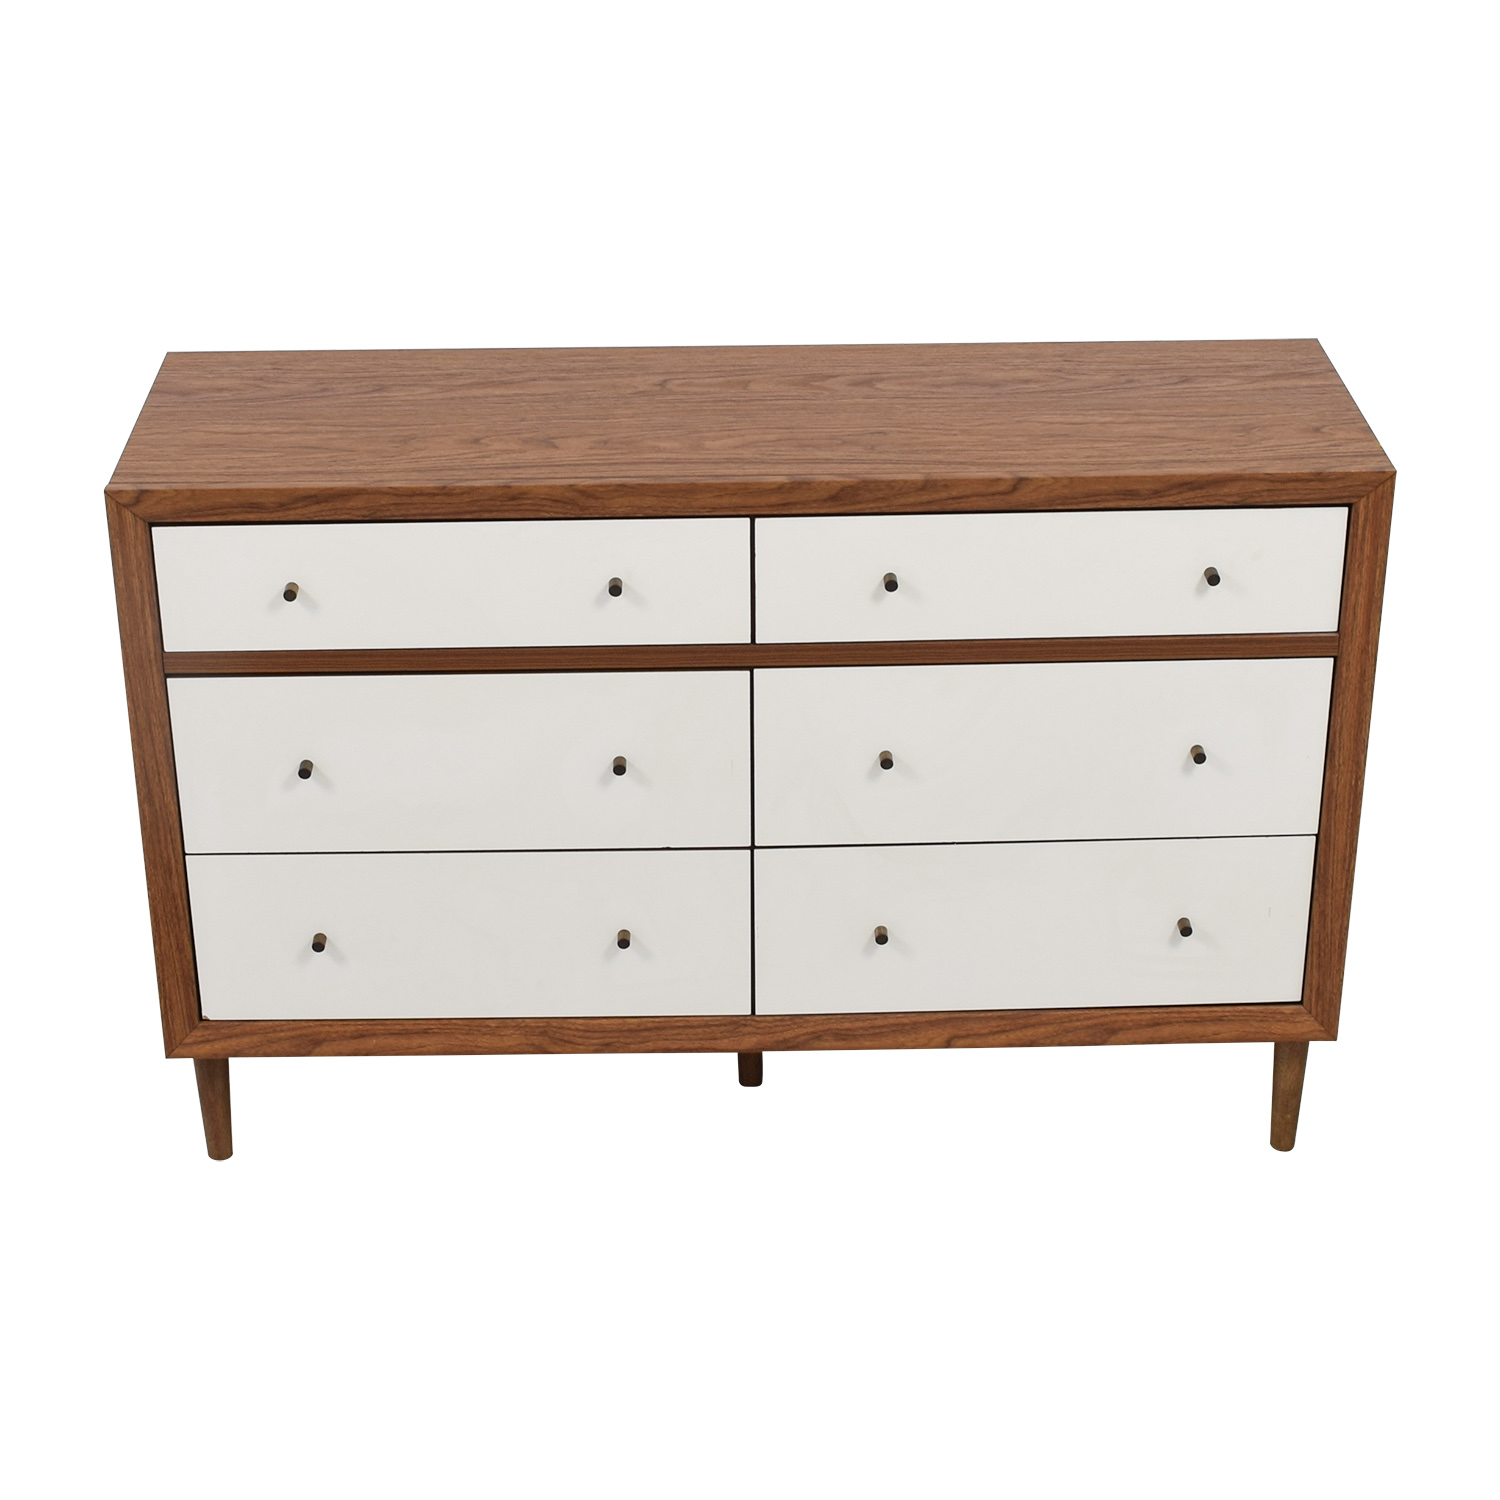 Wayfair Wayfair White & Wood Six-Drawer Dresser discount